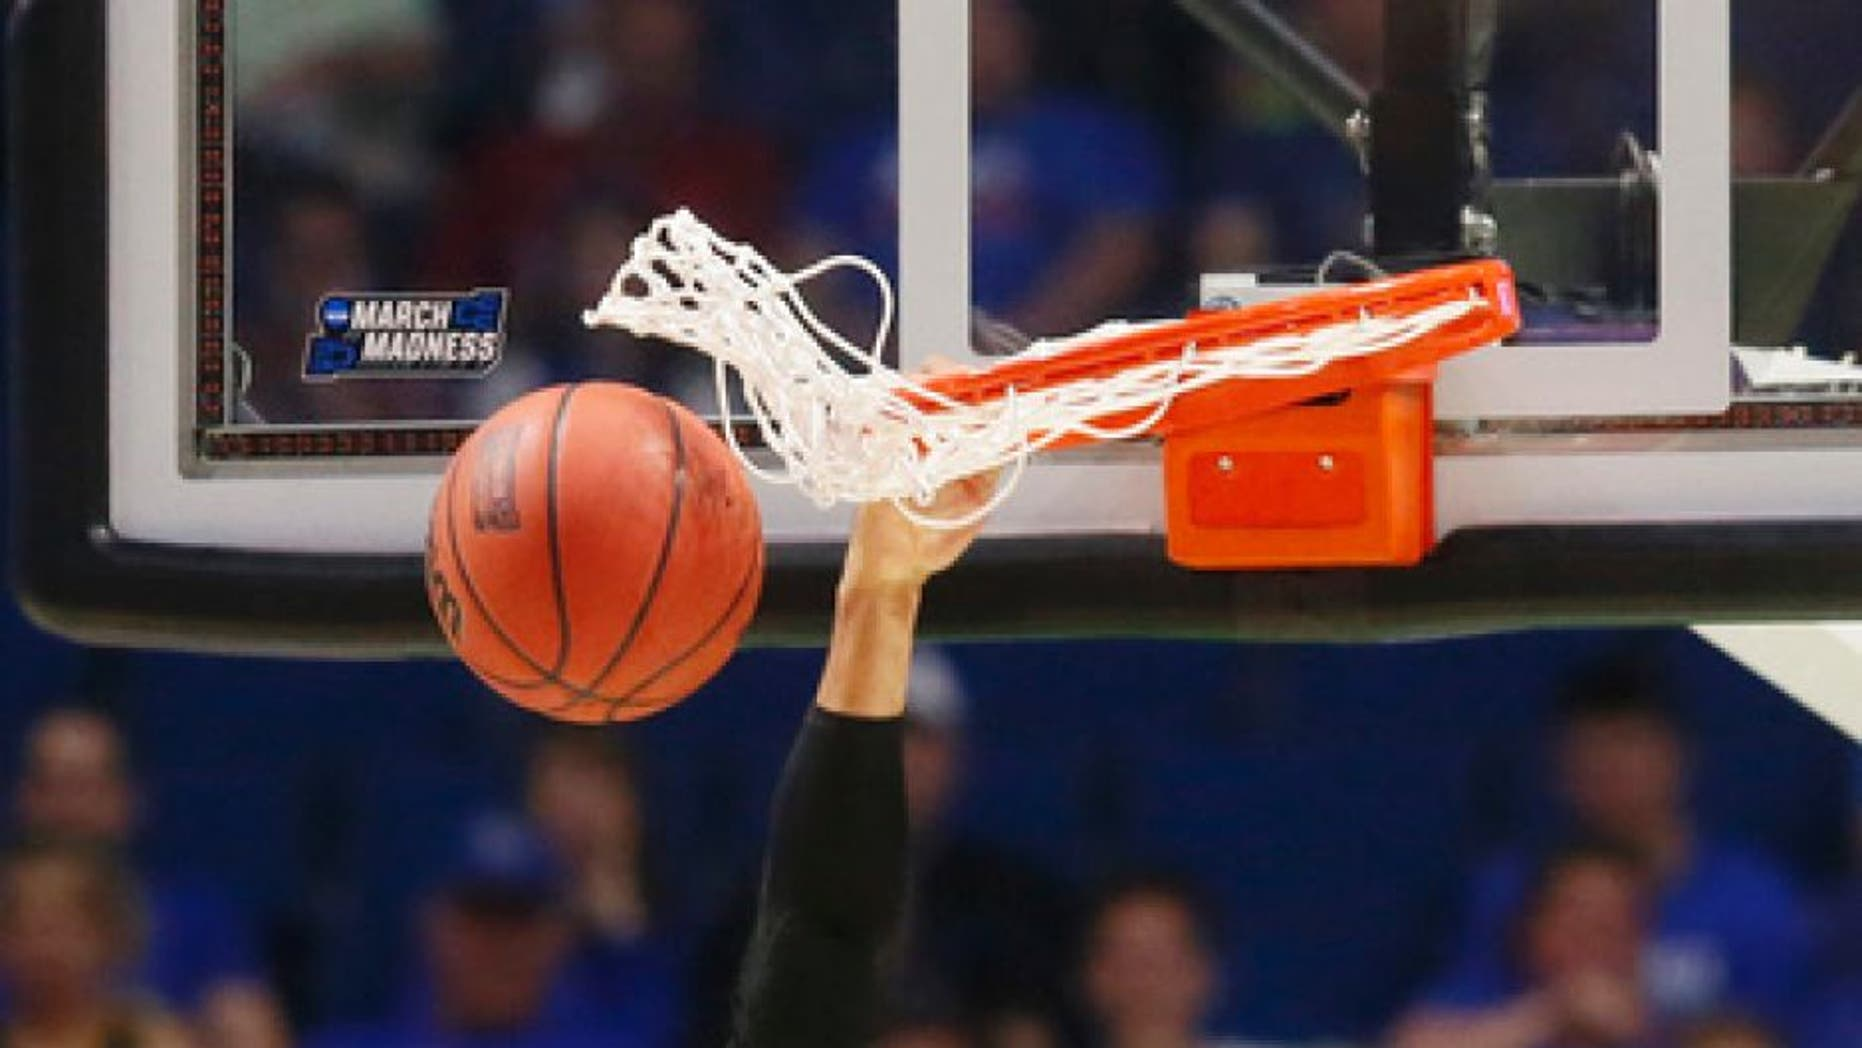 Baylor guard Ishmail Wainright (24) dunks during the first half of a second-round game against Southern California during the NCAA men's college basketball tournament in Tulsa, Okla., Sunday, March 19, 2017. (AP Photo/Sue Ogrocki)